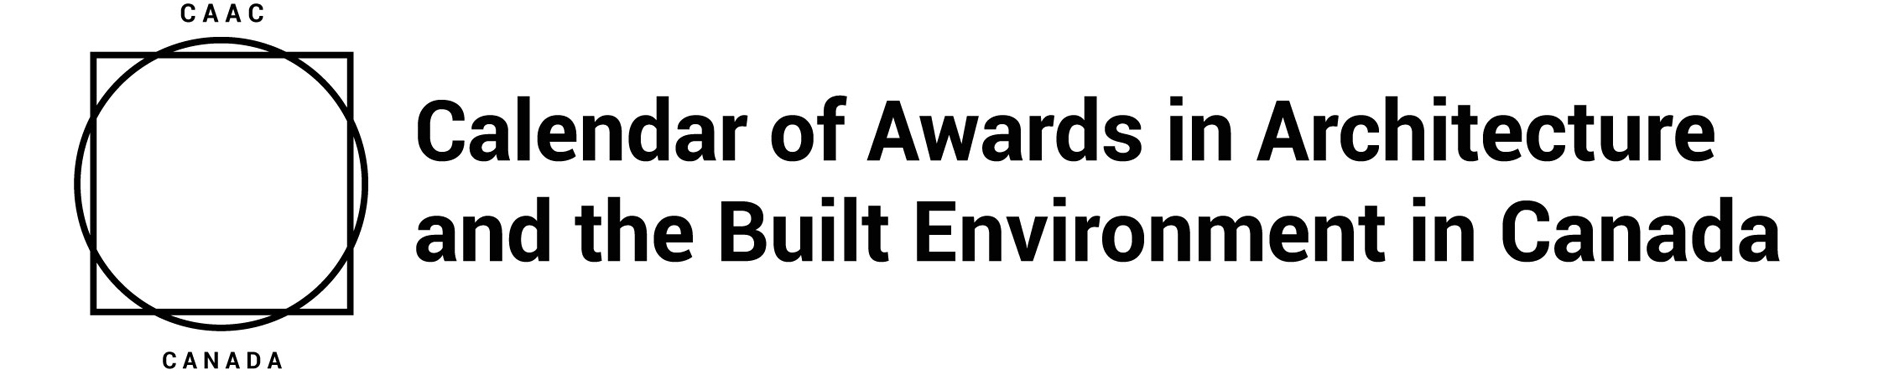 Calendar of Awards in Architecture and the Built Environment in Canada